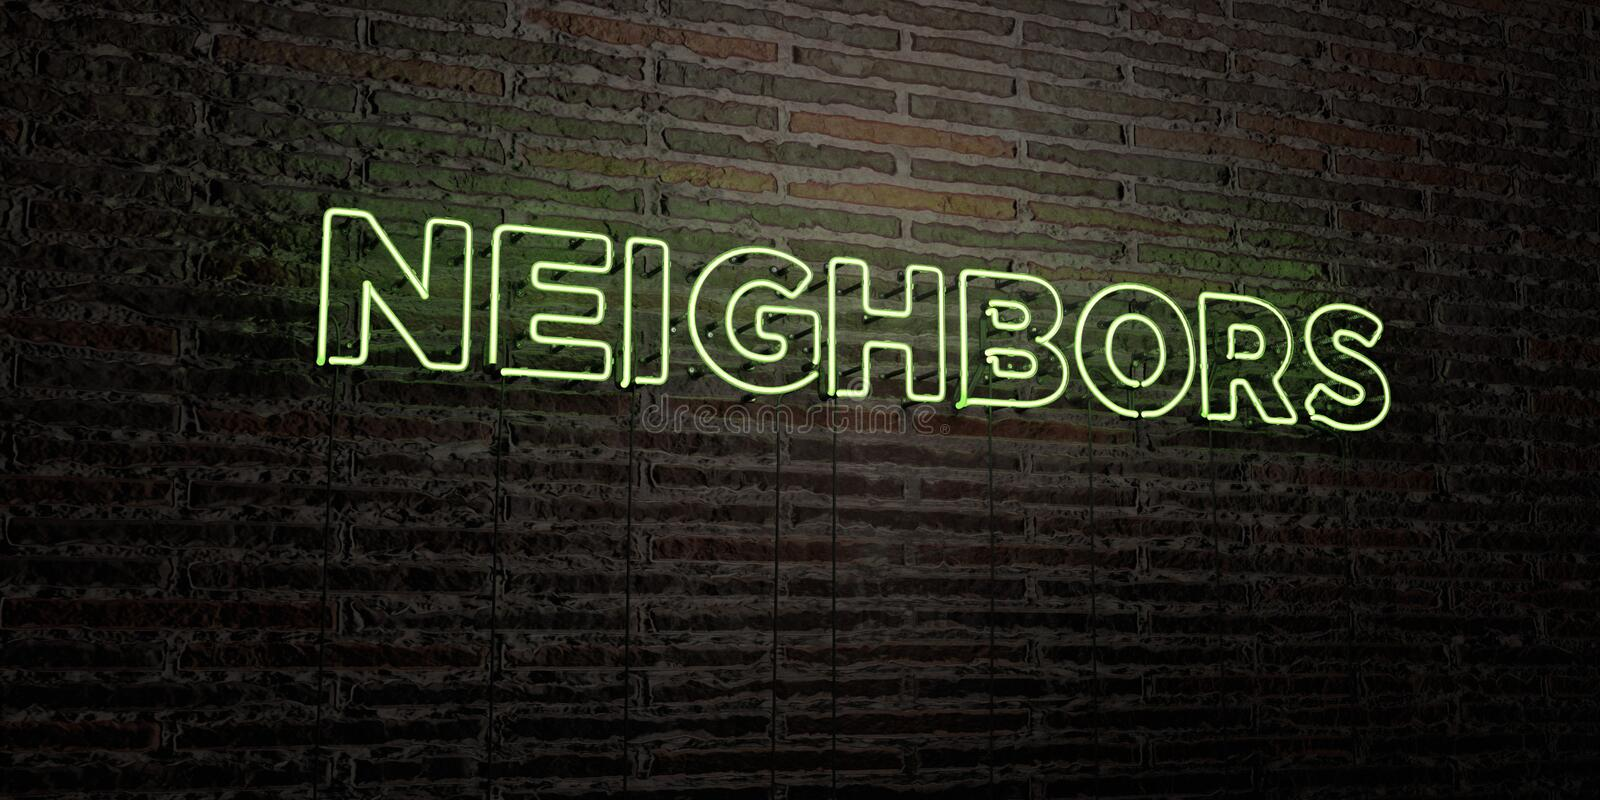 NEIGHBORS -Realistic Neon Sign on Brick Wall background - 3D rendered royalty free stock image. Can be used for online banner ads and direct mailers stock illustration